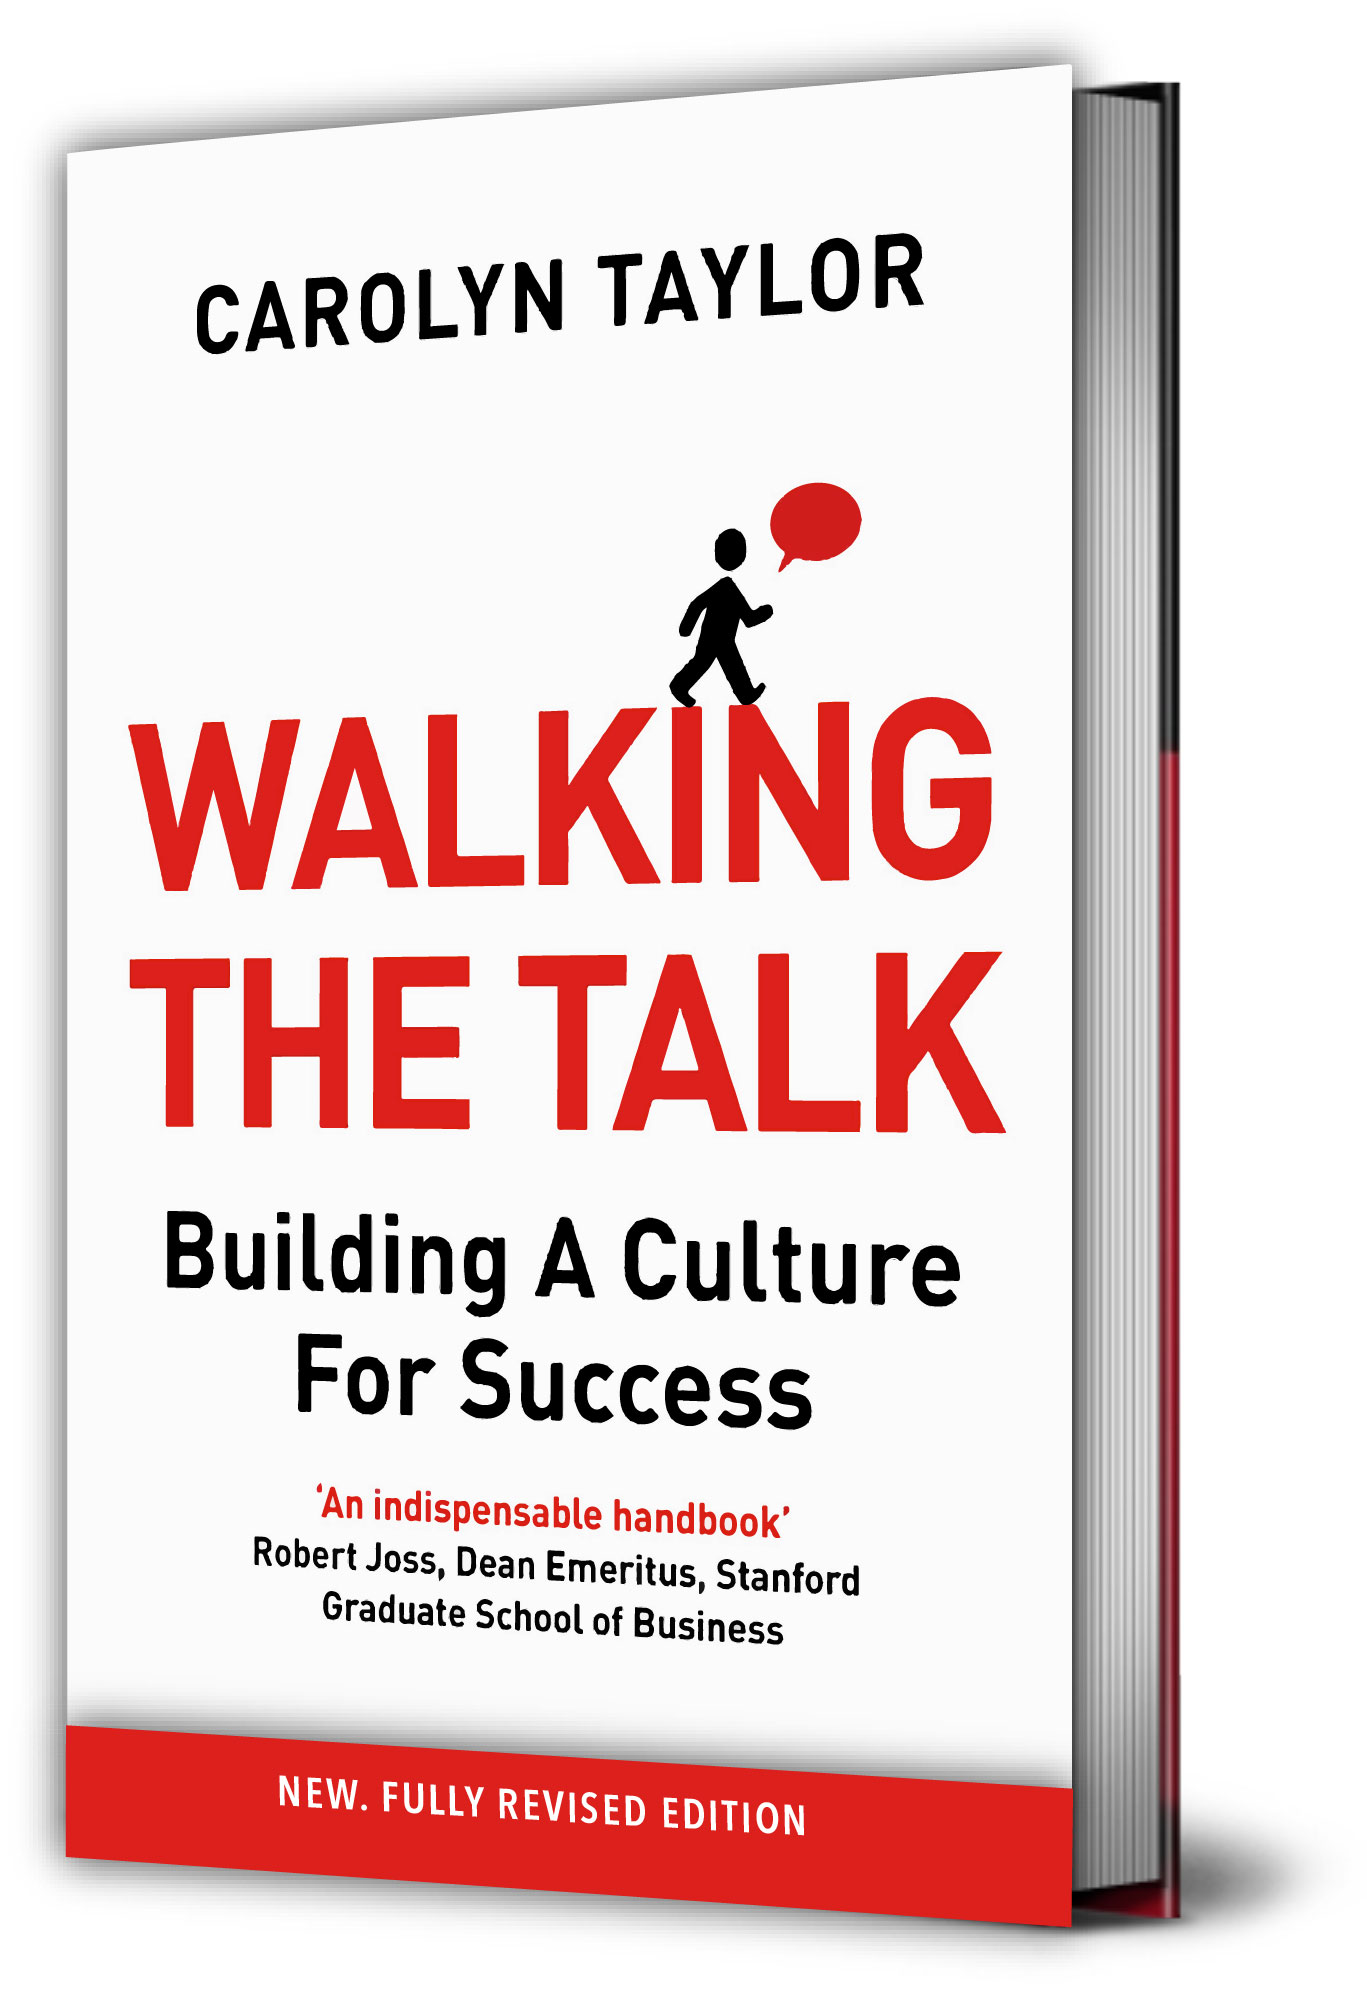 Workplace culture | Leadership book